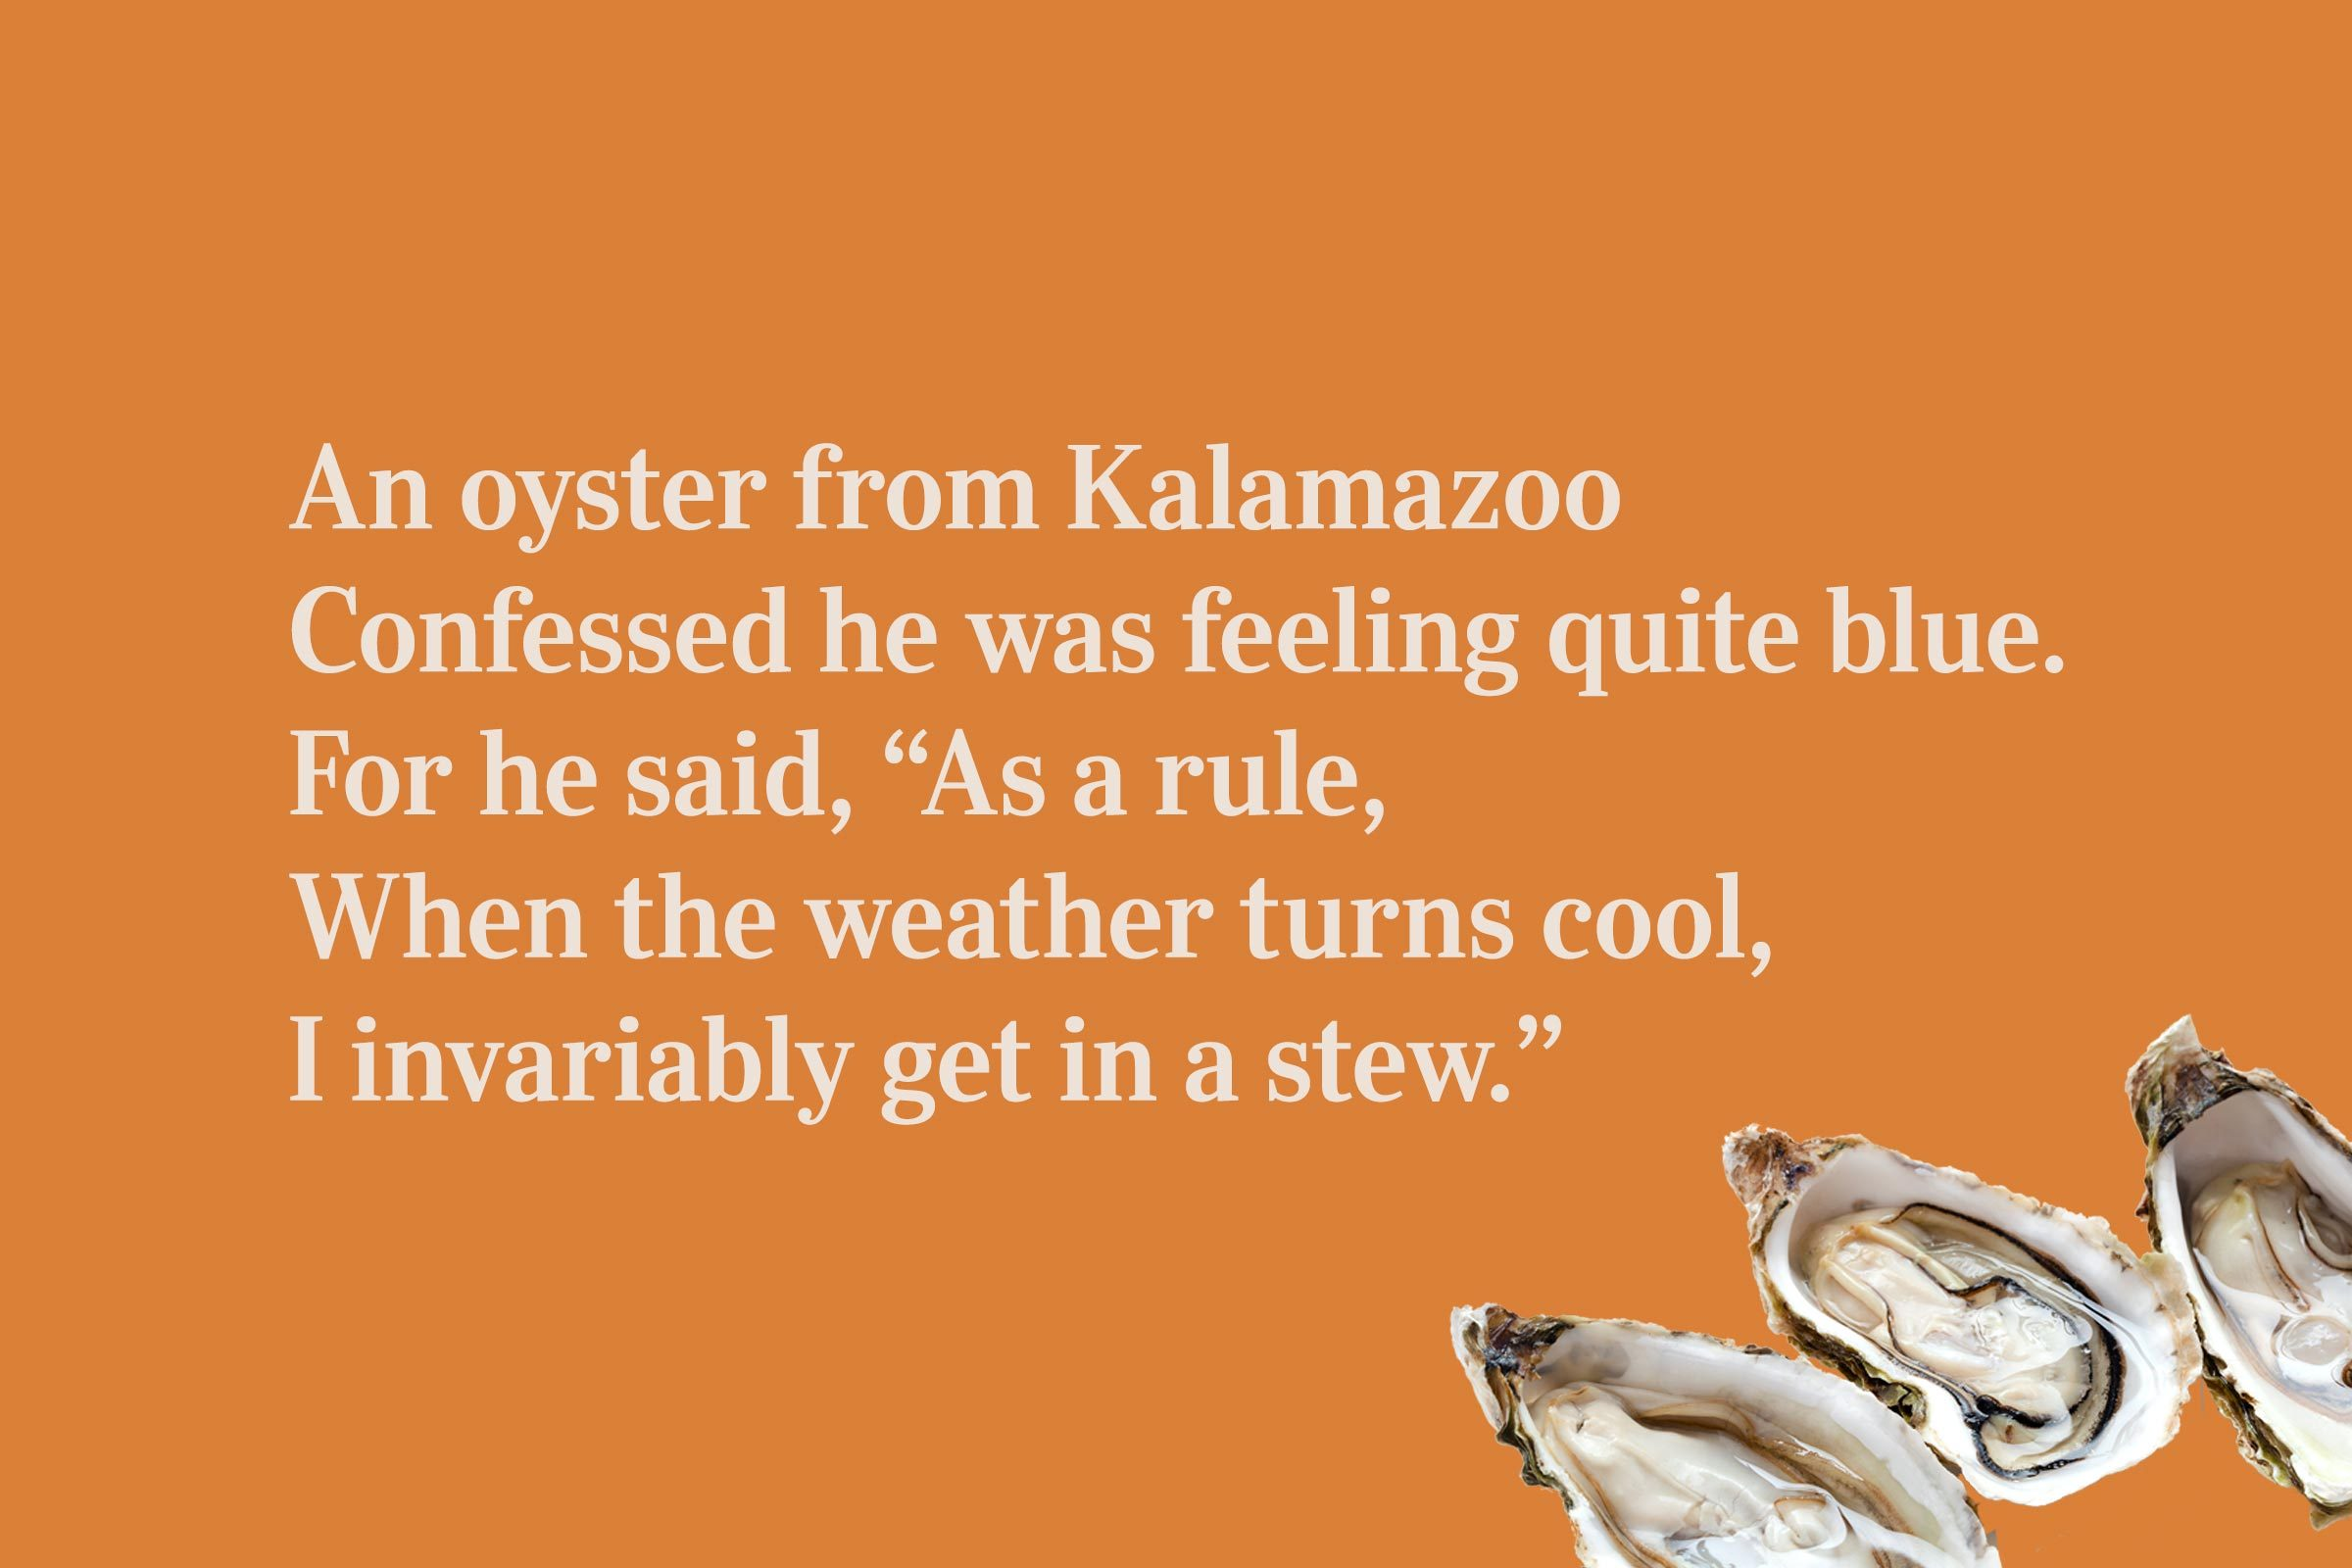 "An oyster from Kalamazoo / Confessed he was feeling quite blue. / For he said, ""As a rule, / When the weather turns cool, / I invariably get in a stew."""